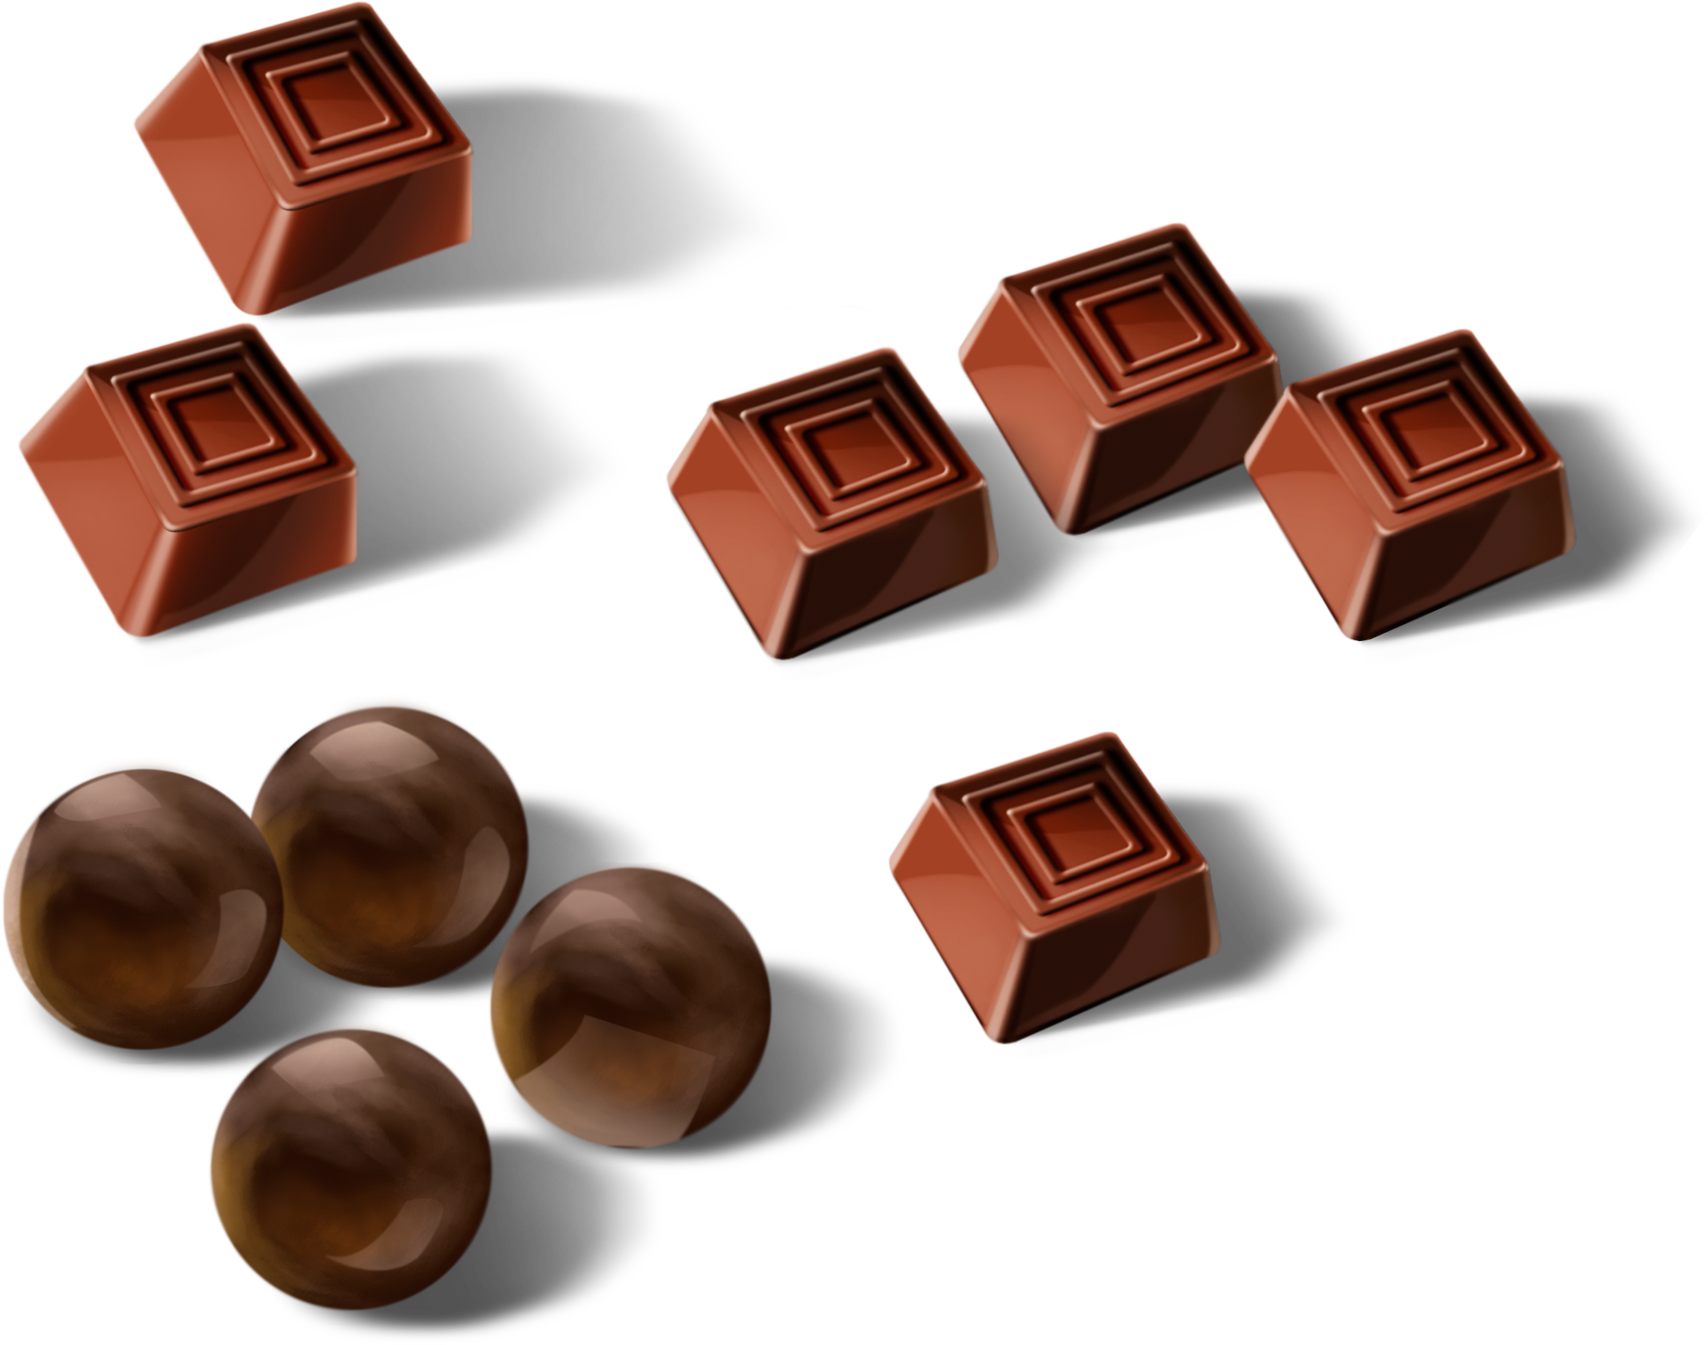 Png Chocolate High-quality Download image #32796